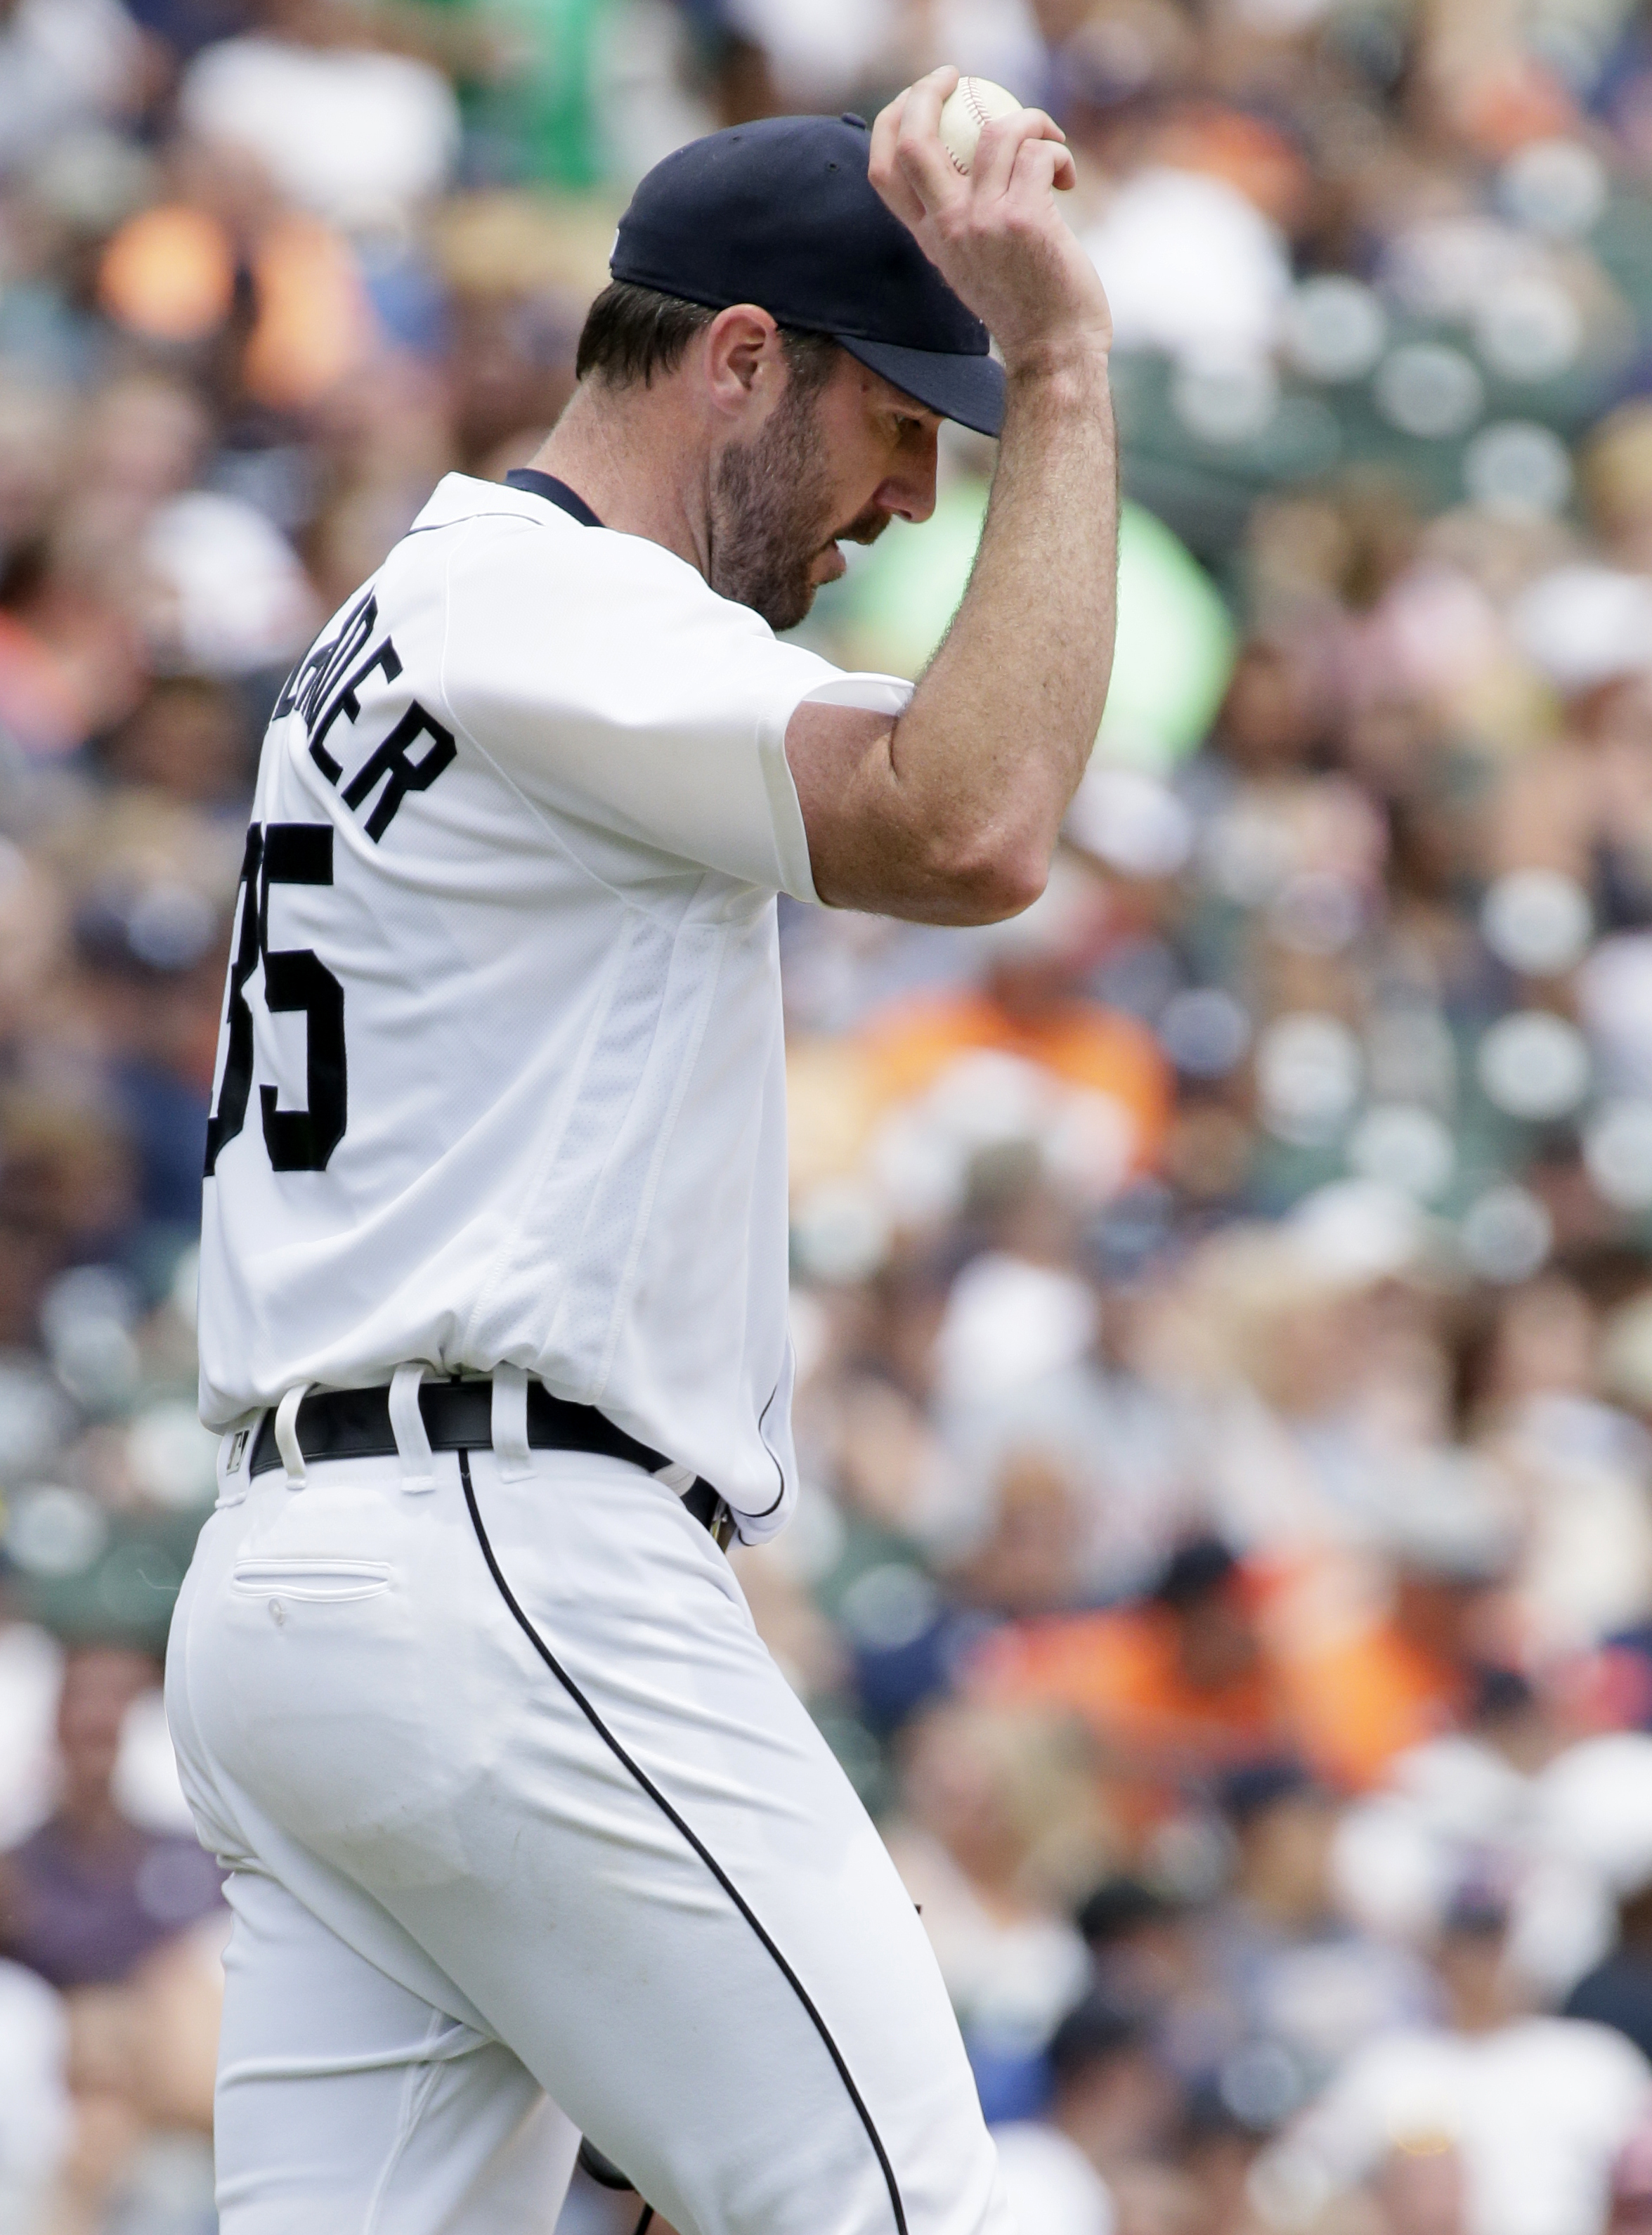 Detroit Tigers' Justin Verlander reacts after giving up a two-run home run to Cleveland Indians' Mike Napoli during the fifth inning of a baseball game Sunday, June 26, 2016, in Detroit. (AP Photo/Duane Burleson)